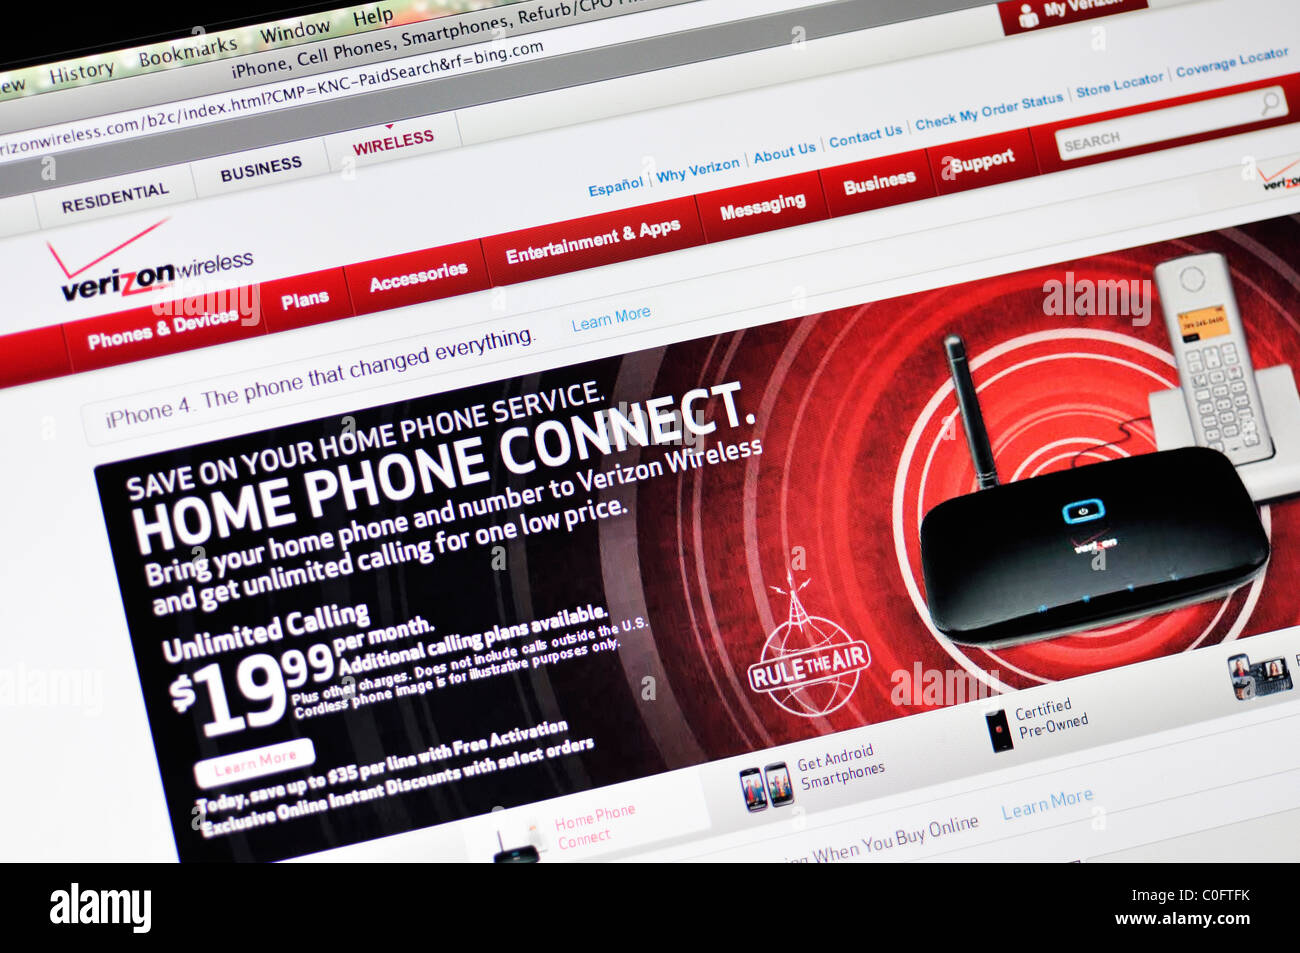 Verizon Stock Photos & Verizon Stock Images - Alamy